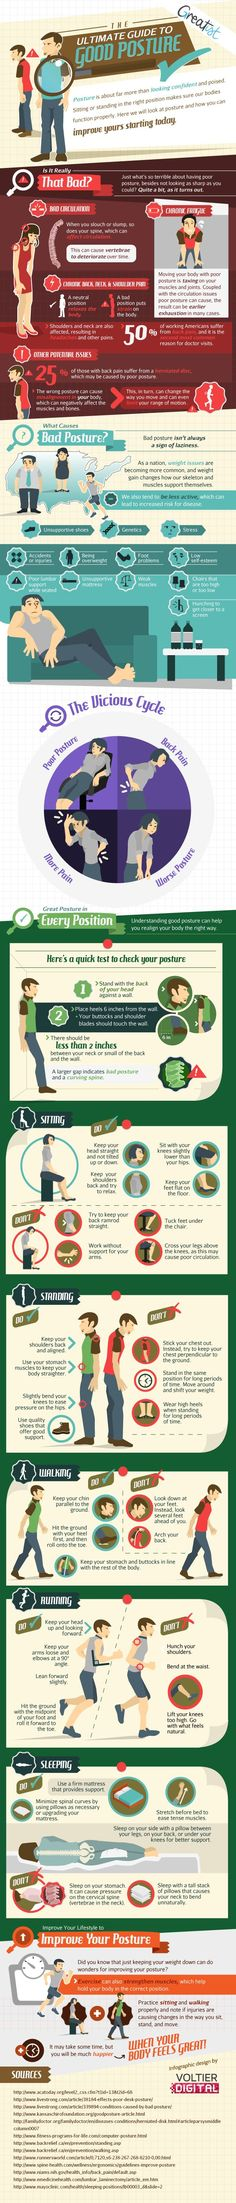 This infographic details the essence of having great posture in: sitting, standing, walking, running, sleeping.